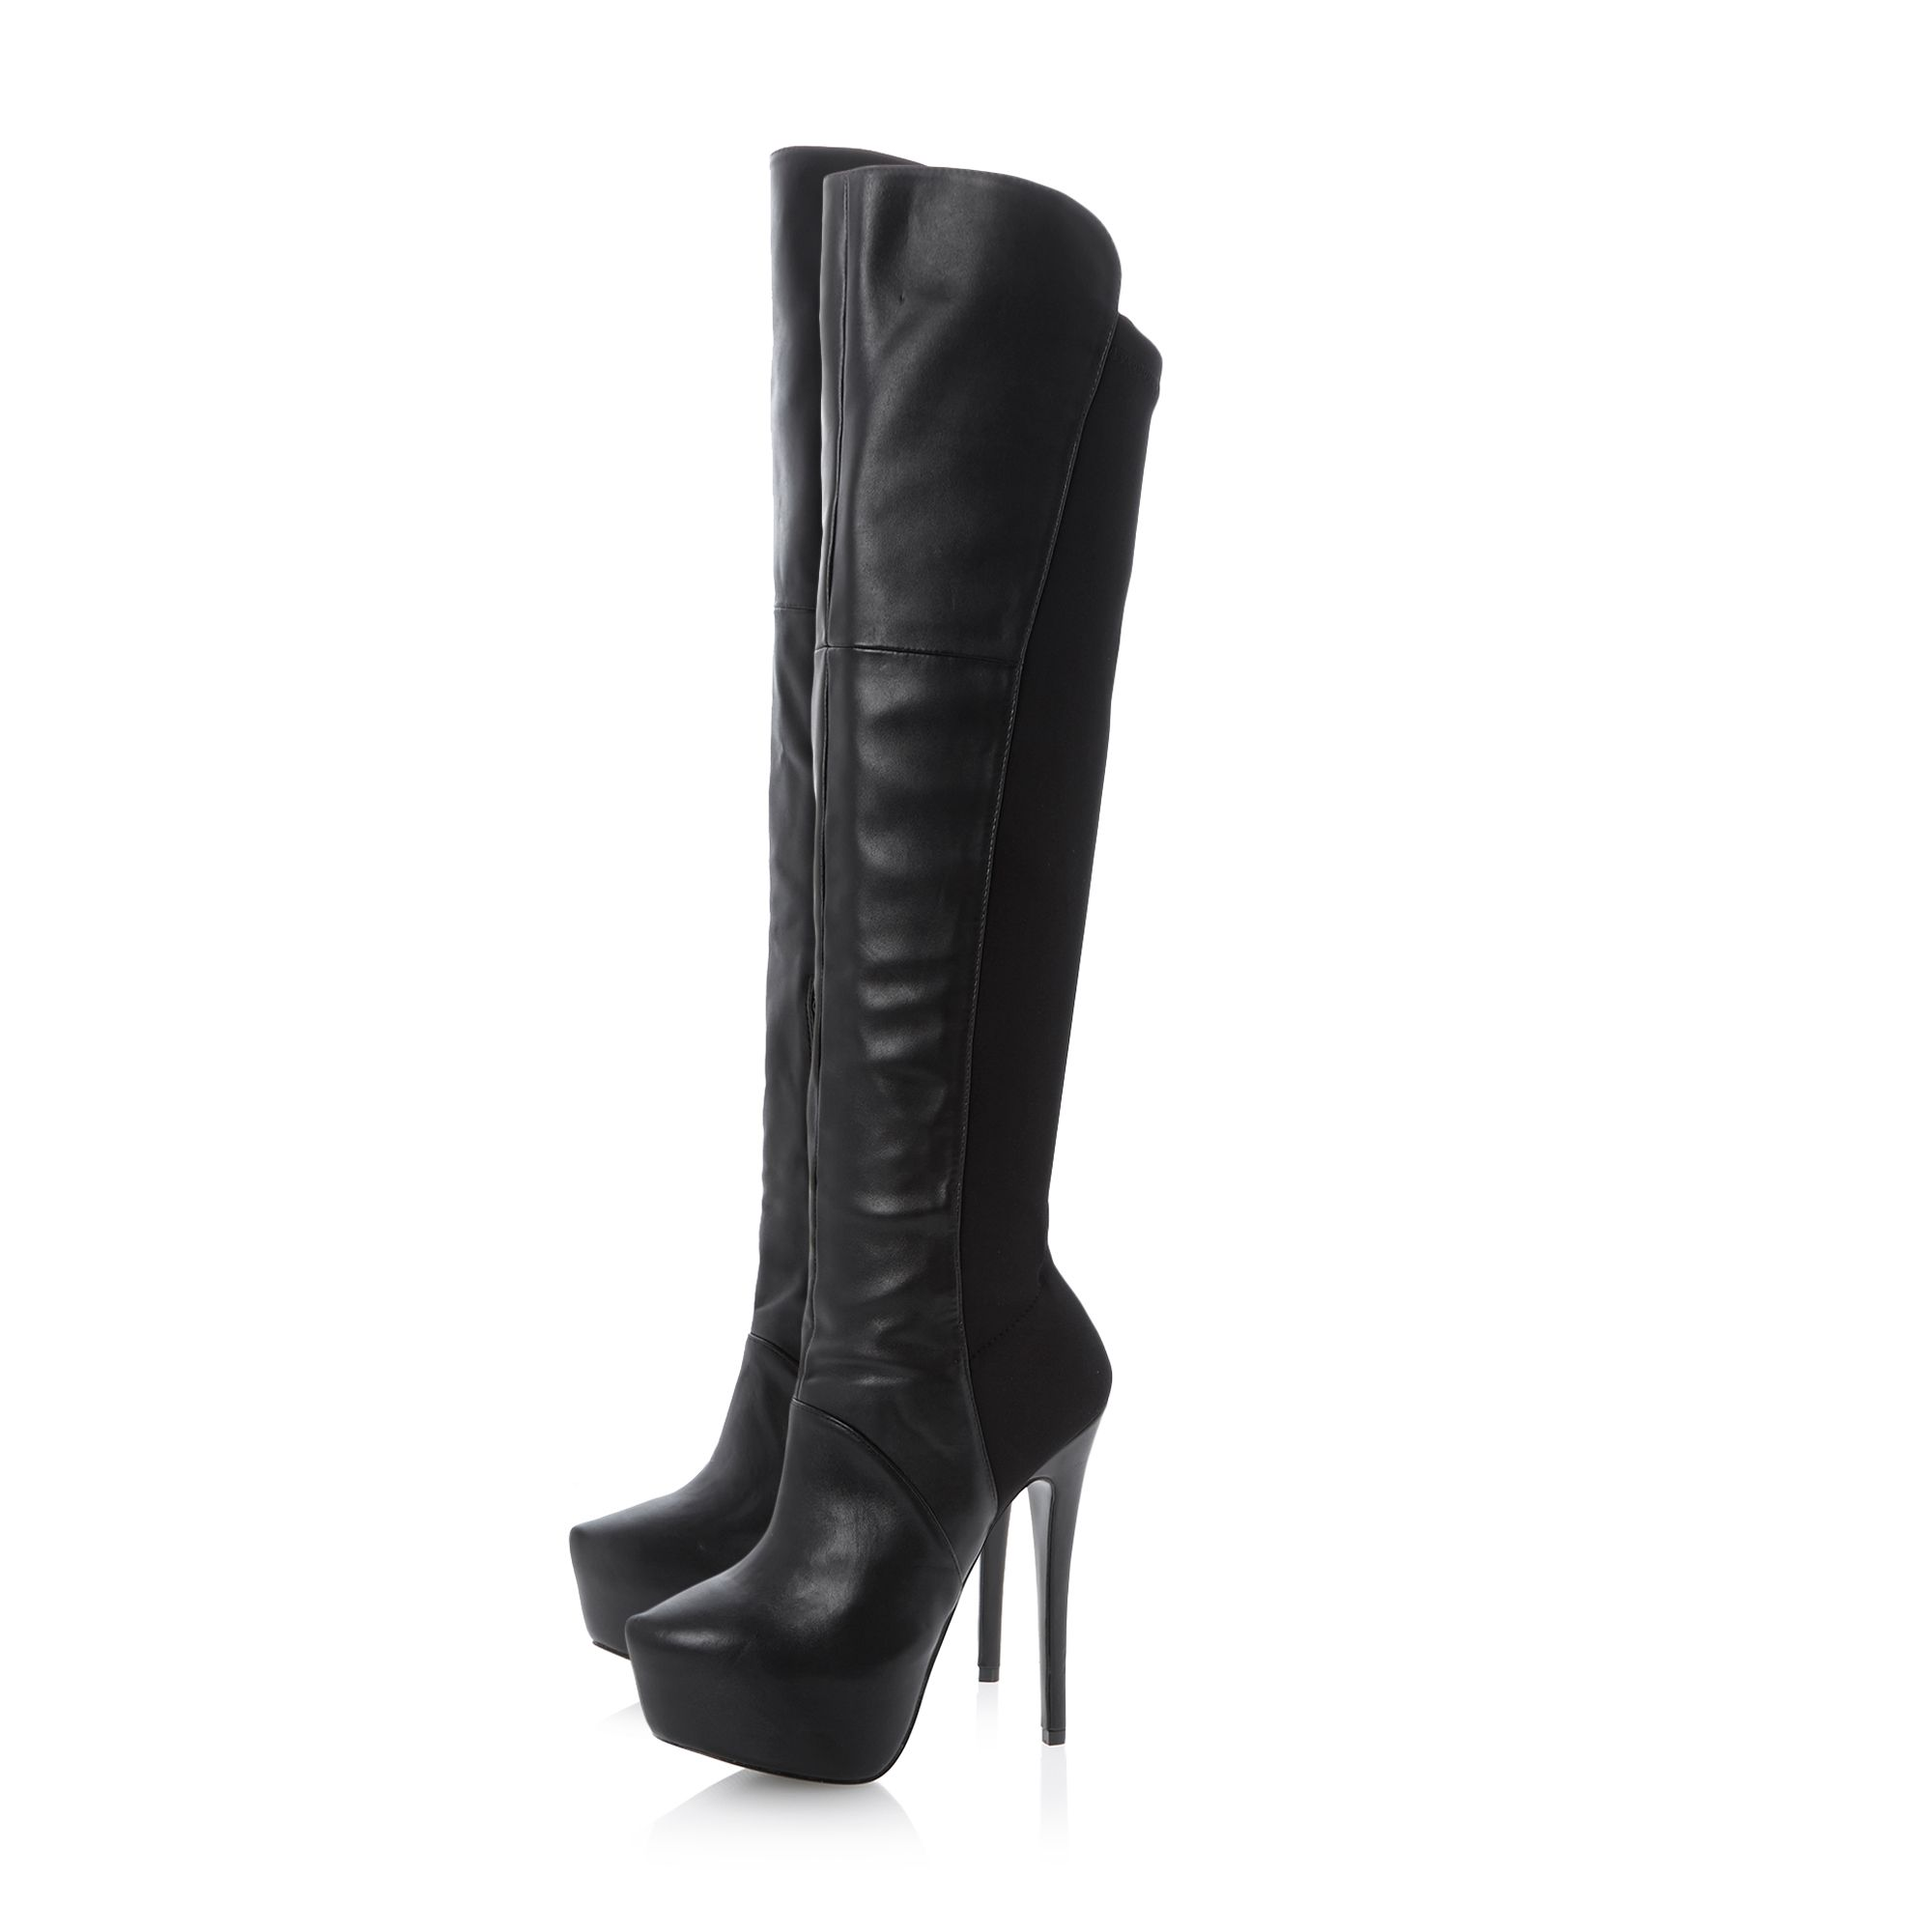 Hightng sm platform stretch boots